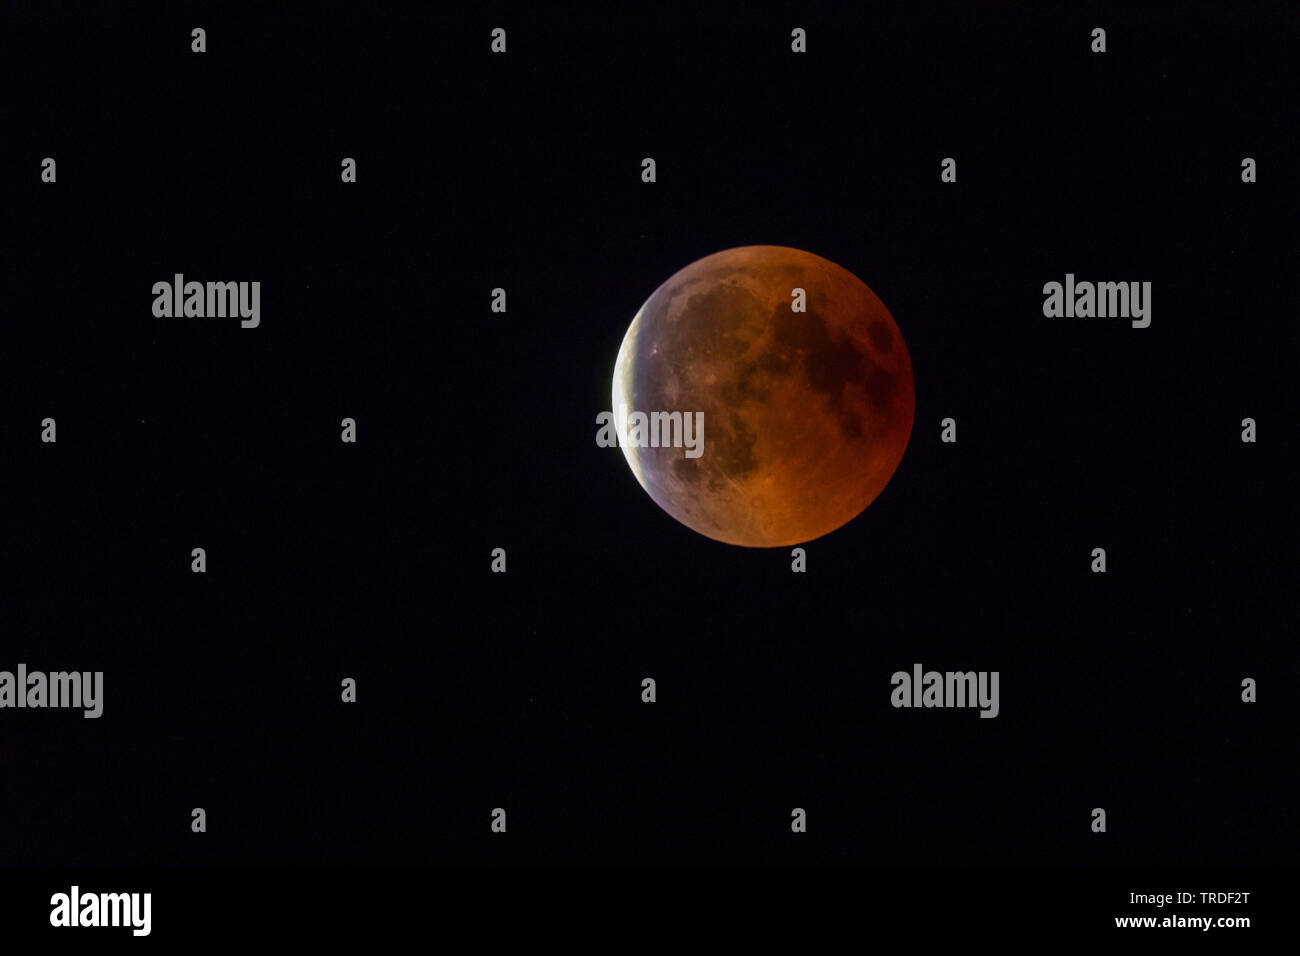 totale Mondfinsternis, 95 %, 27.7.2018 Vollmond, Blutmond, Deutschland, Bayern | total lunar eclipse, 95 %, 27.07.2018, full moon, Germany, Bavaria | - Stock Image